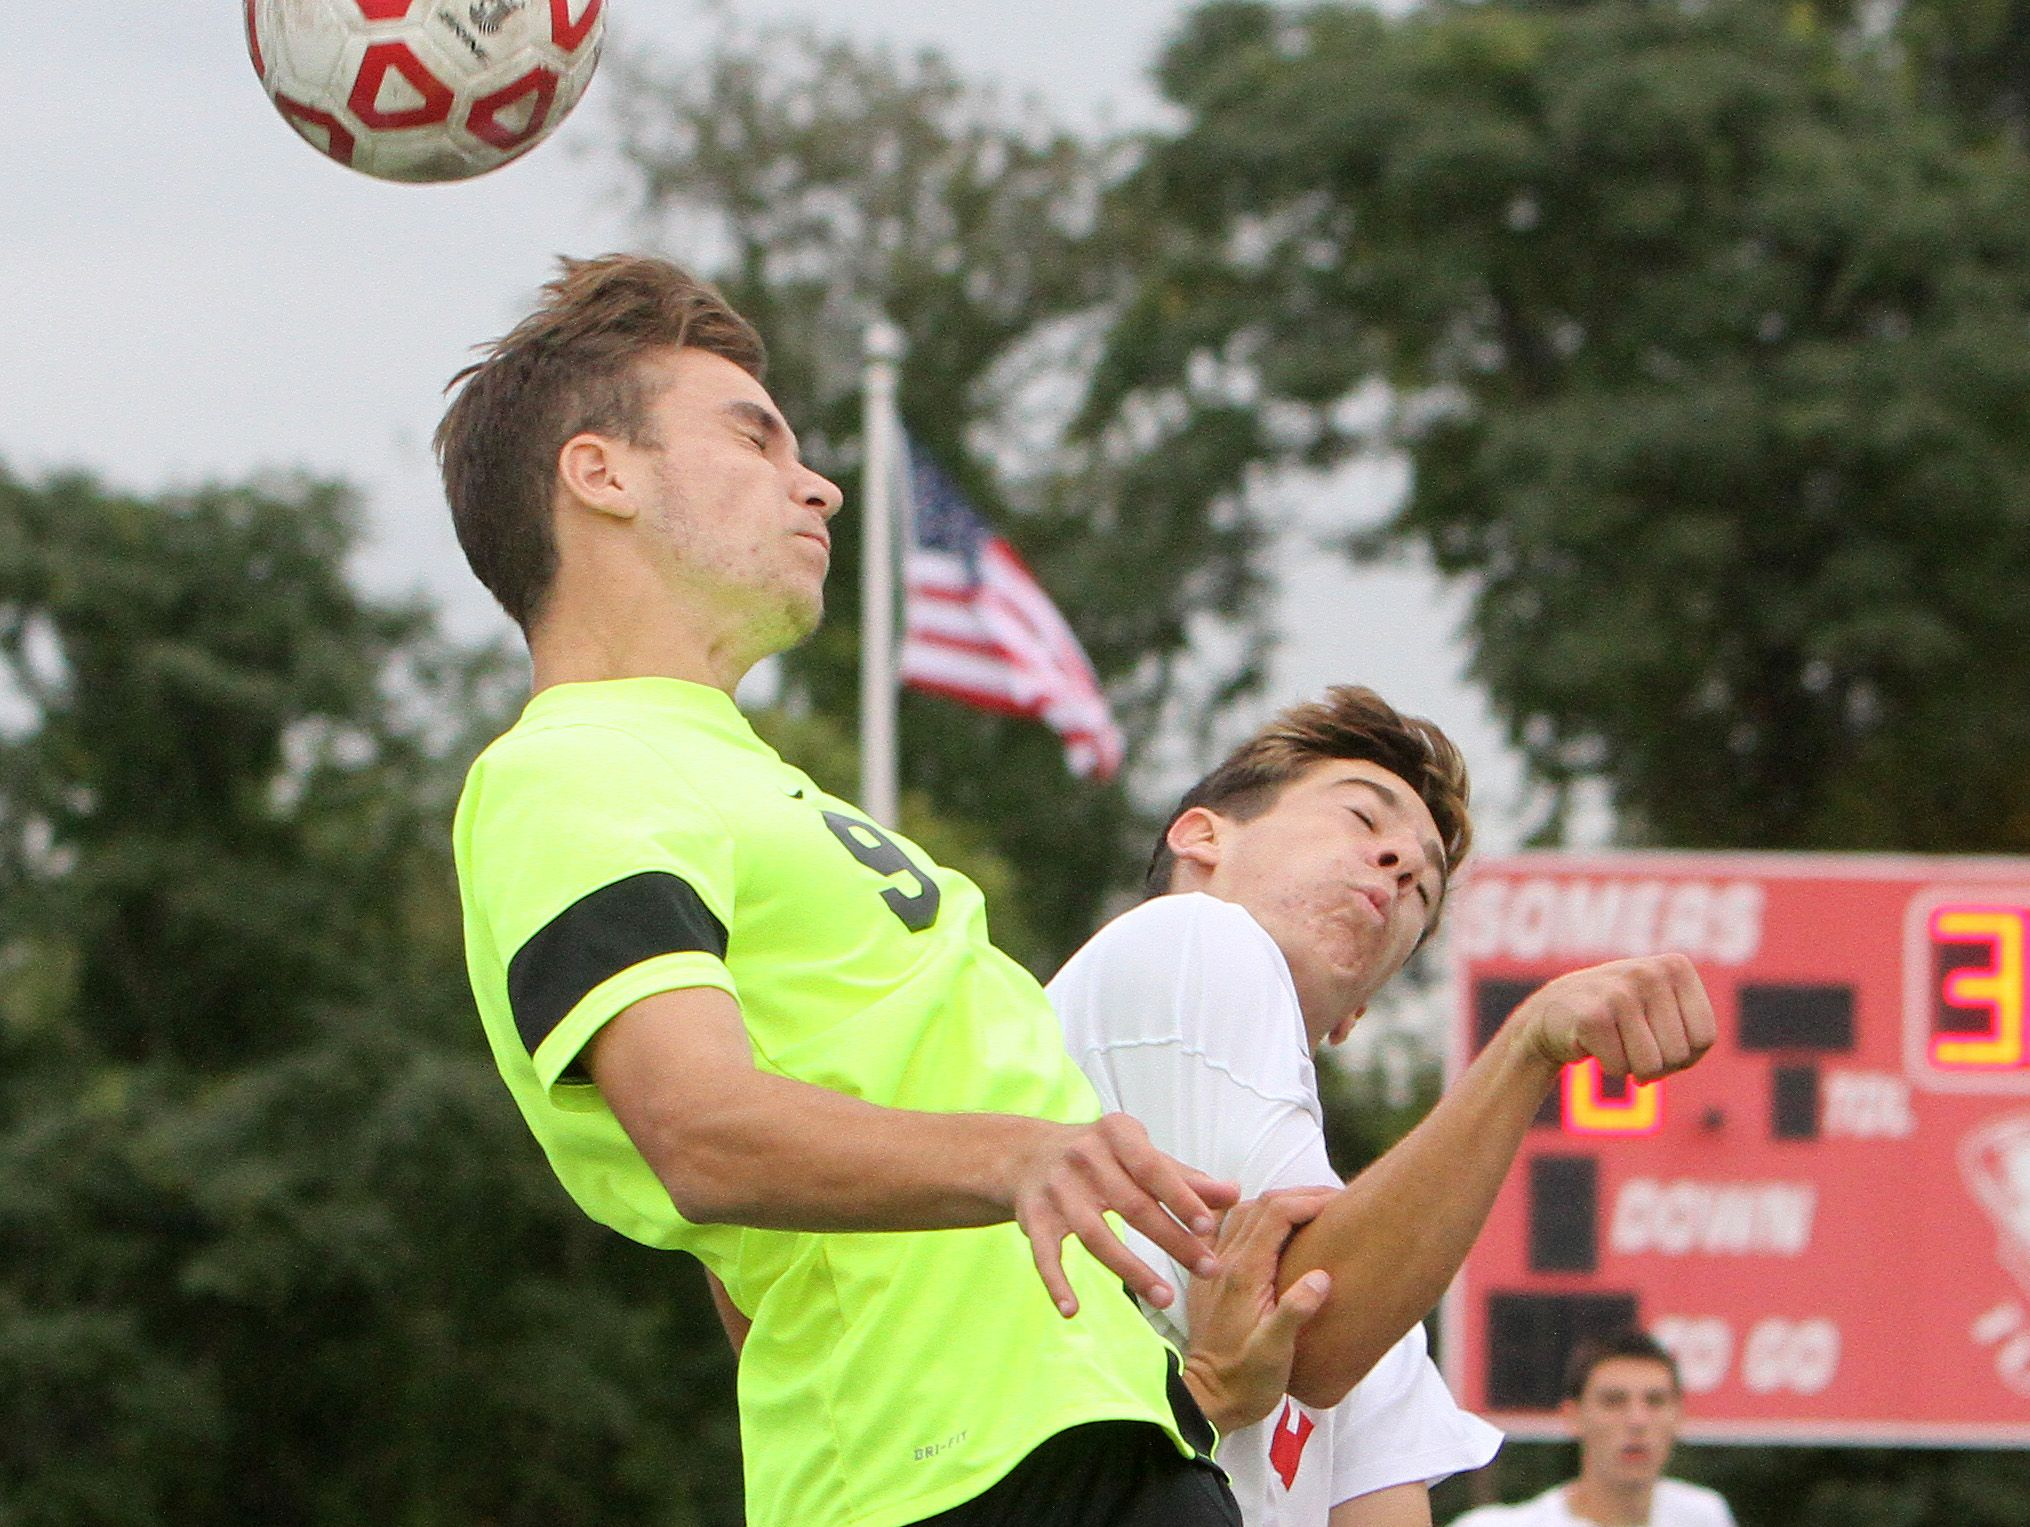 From left, Lakeland's Matias Prando (9) and Somers' Alex Elconin (12) battle for ball control during soccer action at Somers High School Sept. 28, 2016. Lakeland won the game 2-1 in overtime.